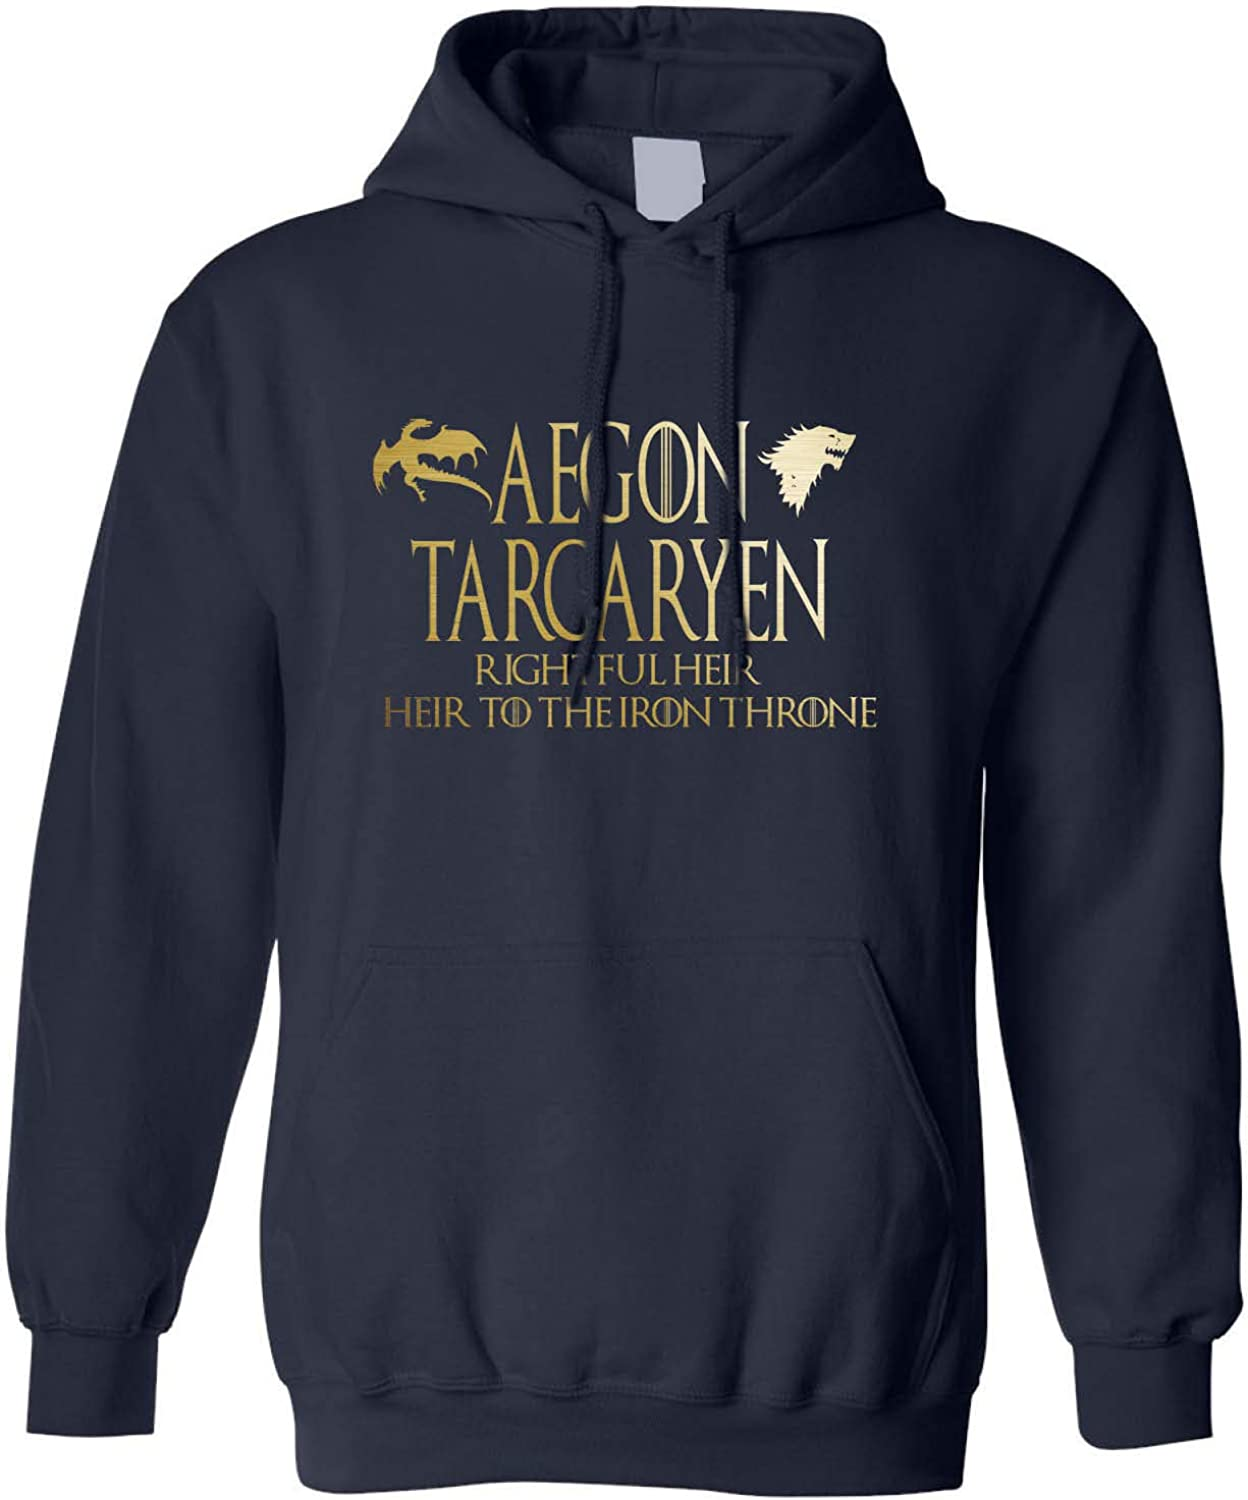 Allntrends Adult Hoodie Aegon Targaryen Rightful Heir Trendy Top Cool Stuff L, Navy Blue